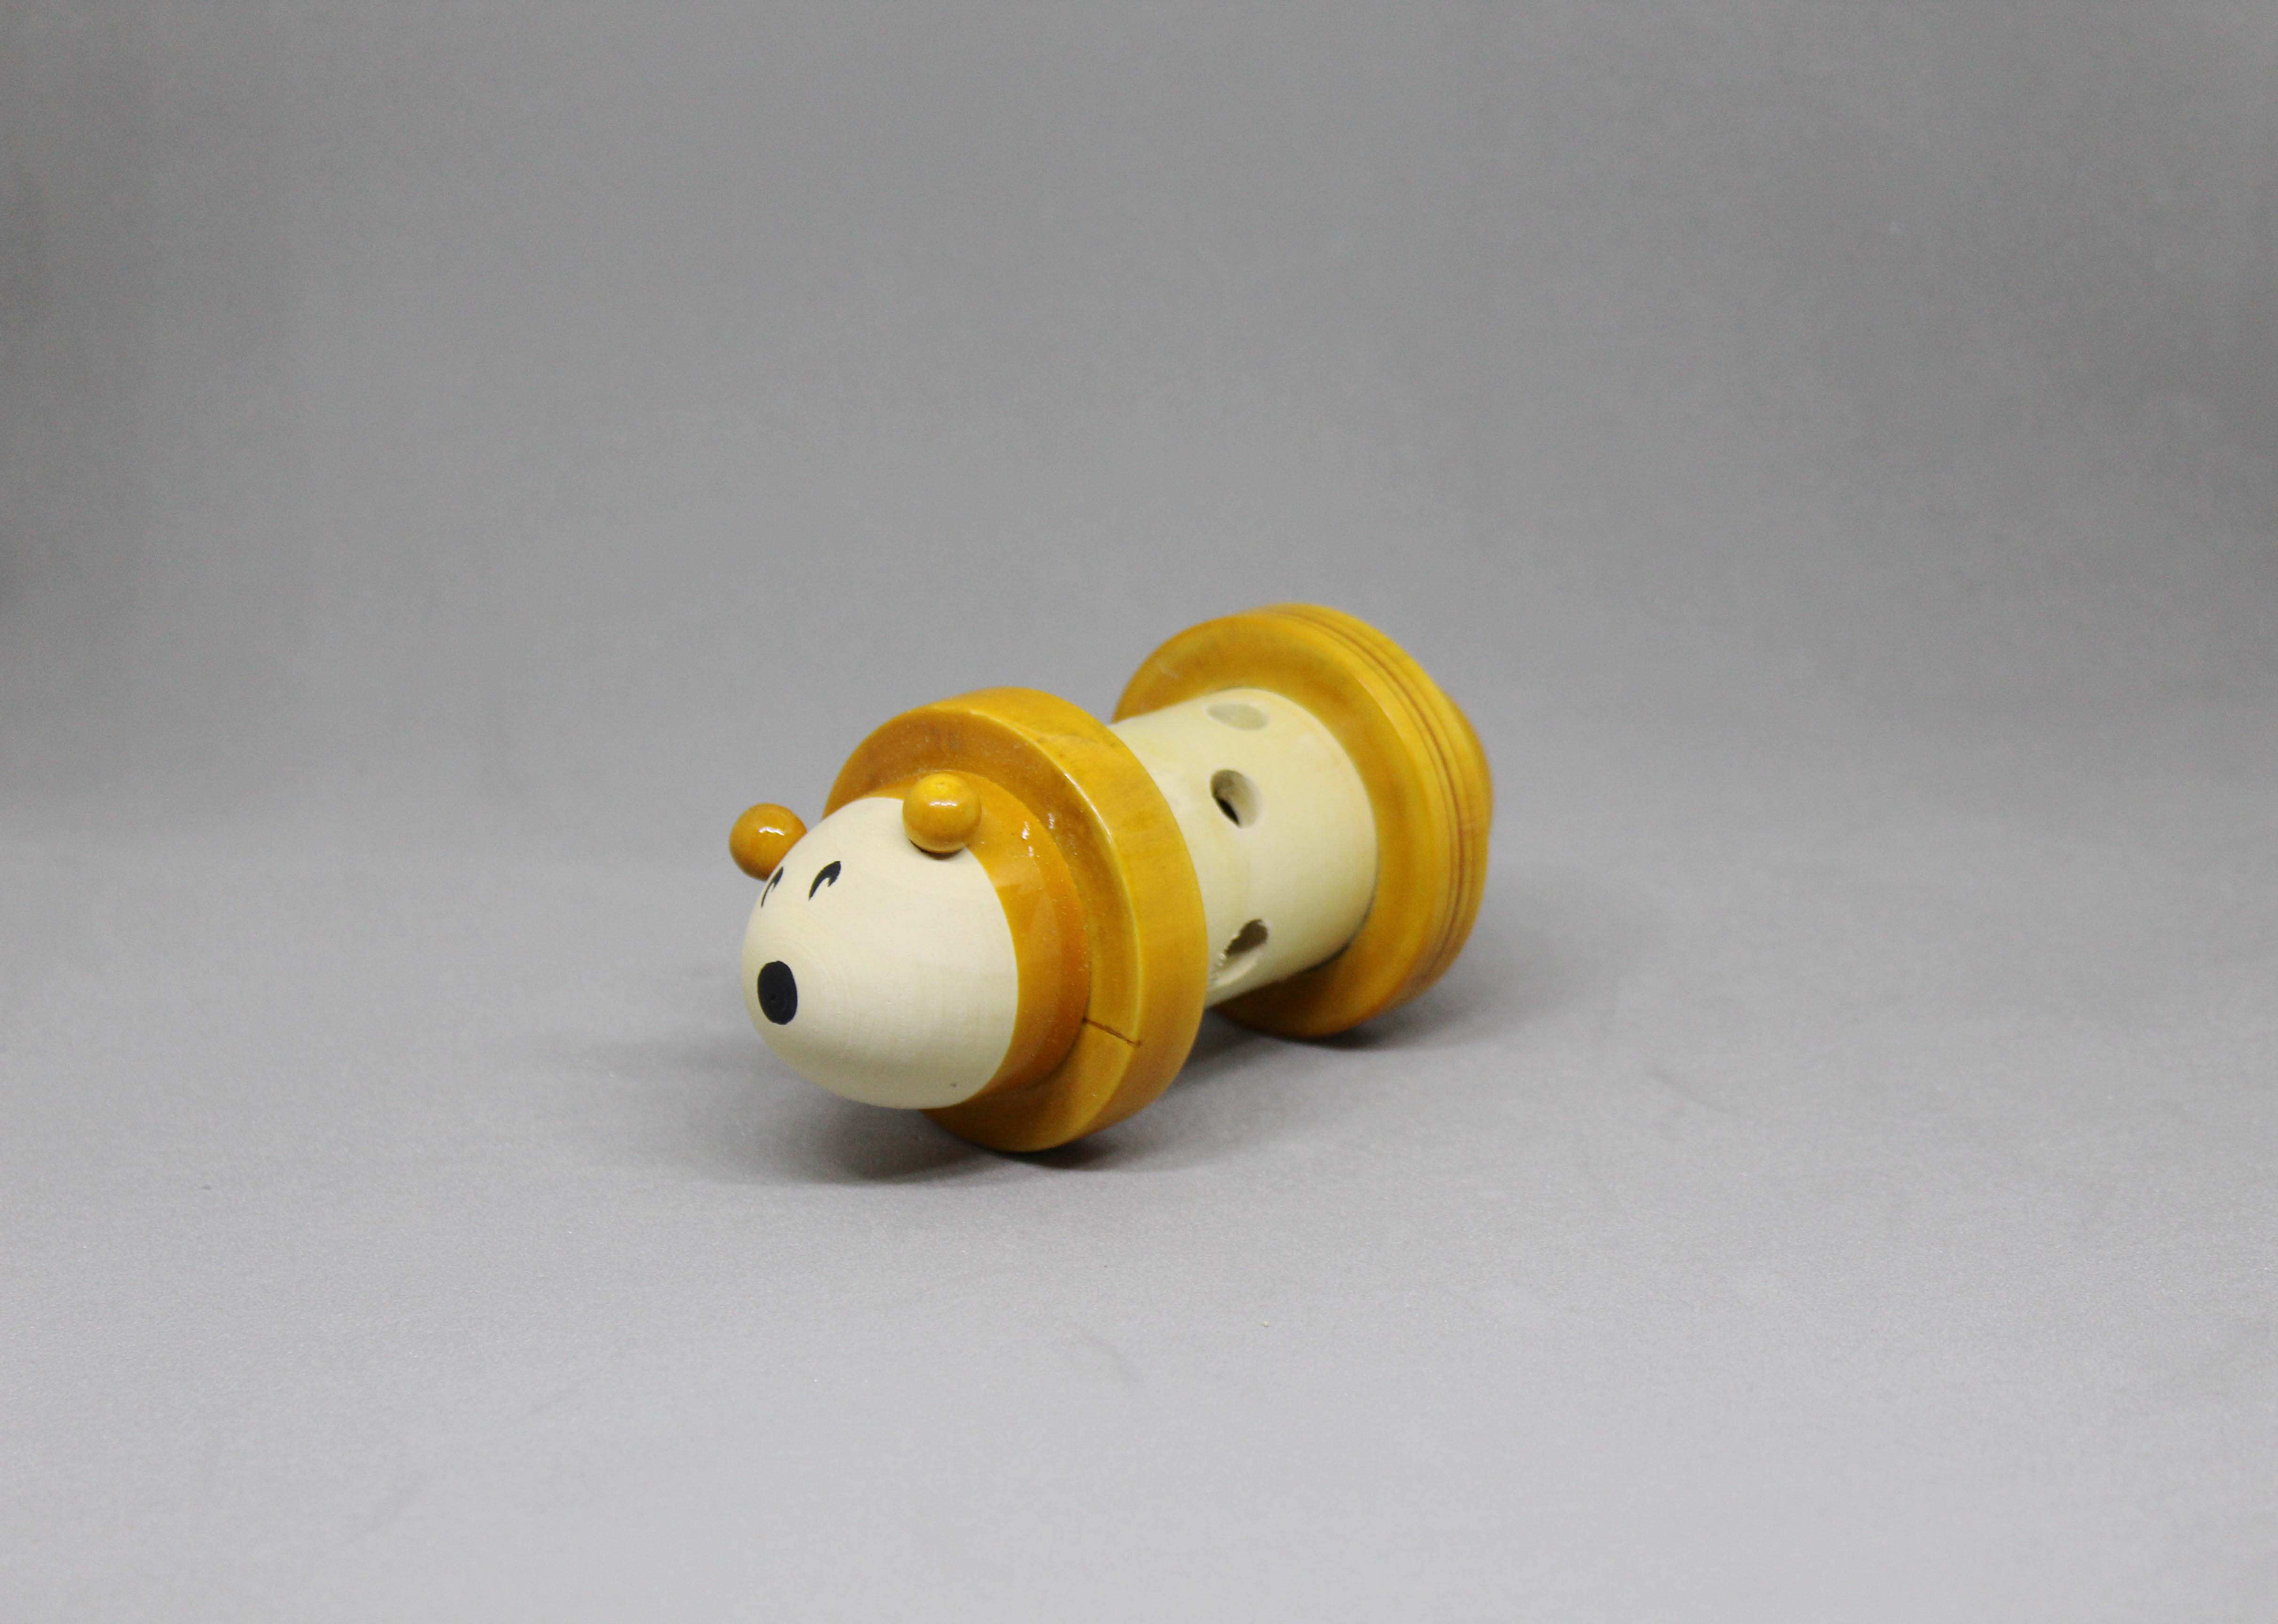 channapatna toy rattle